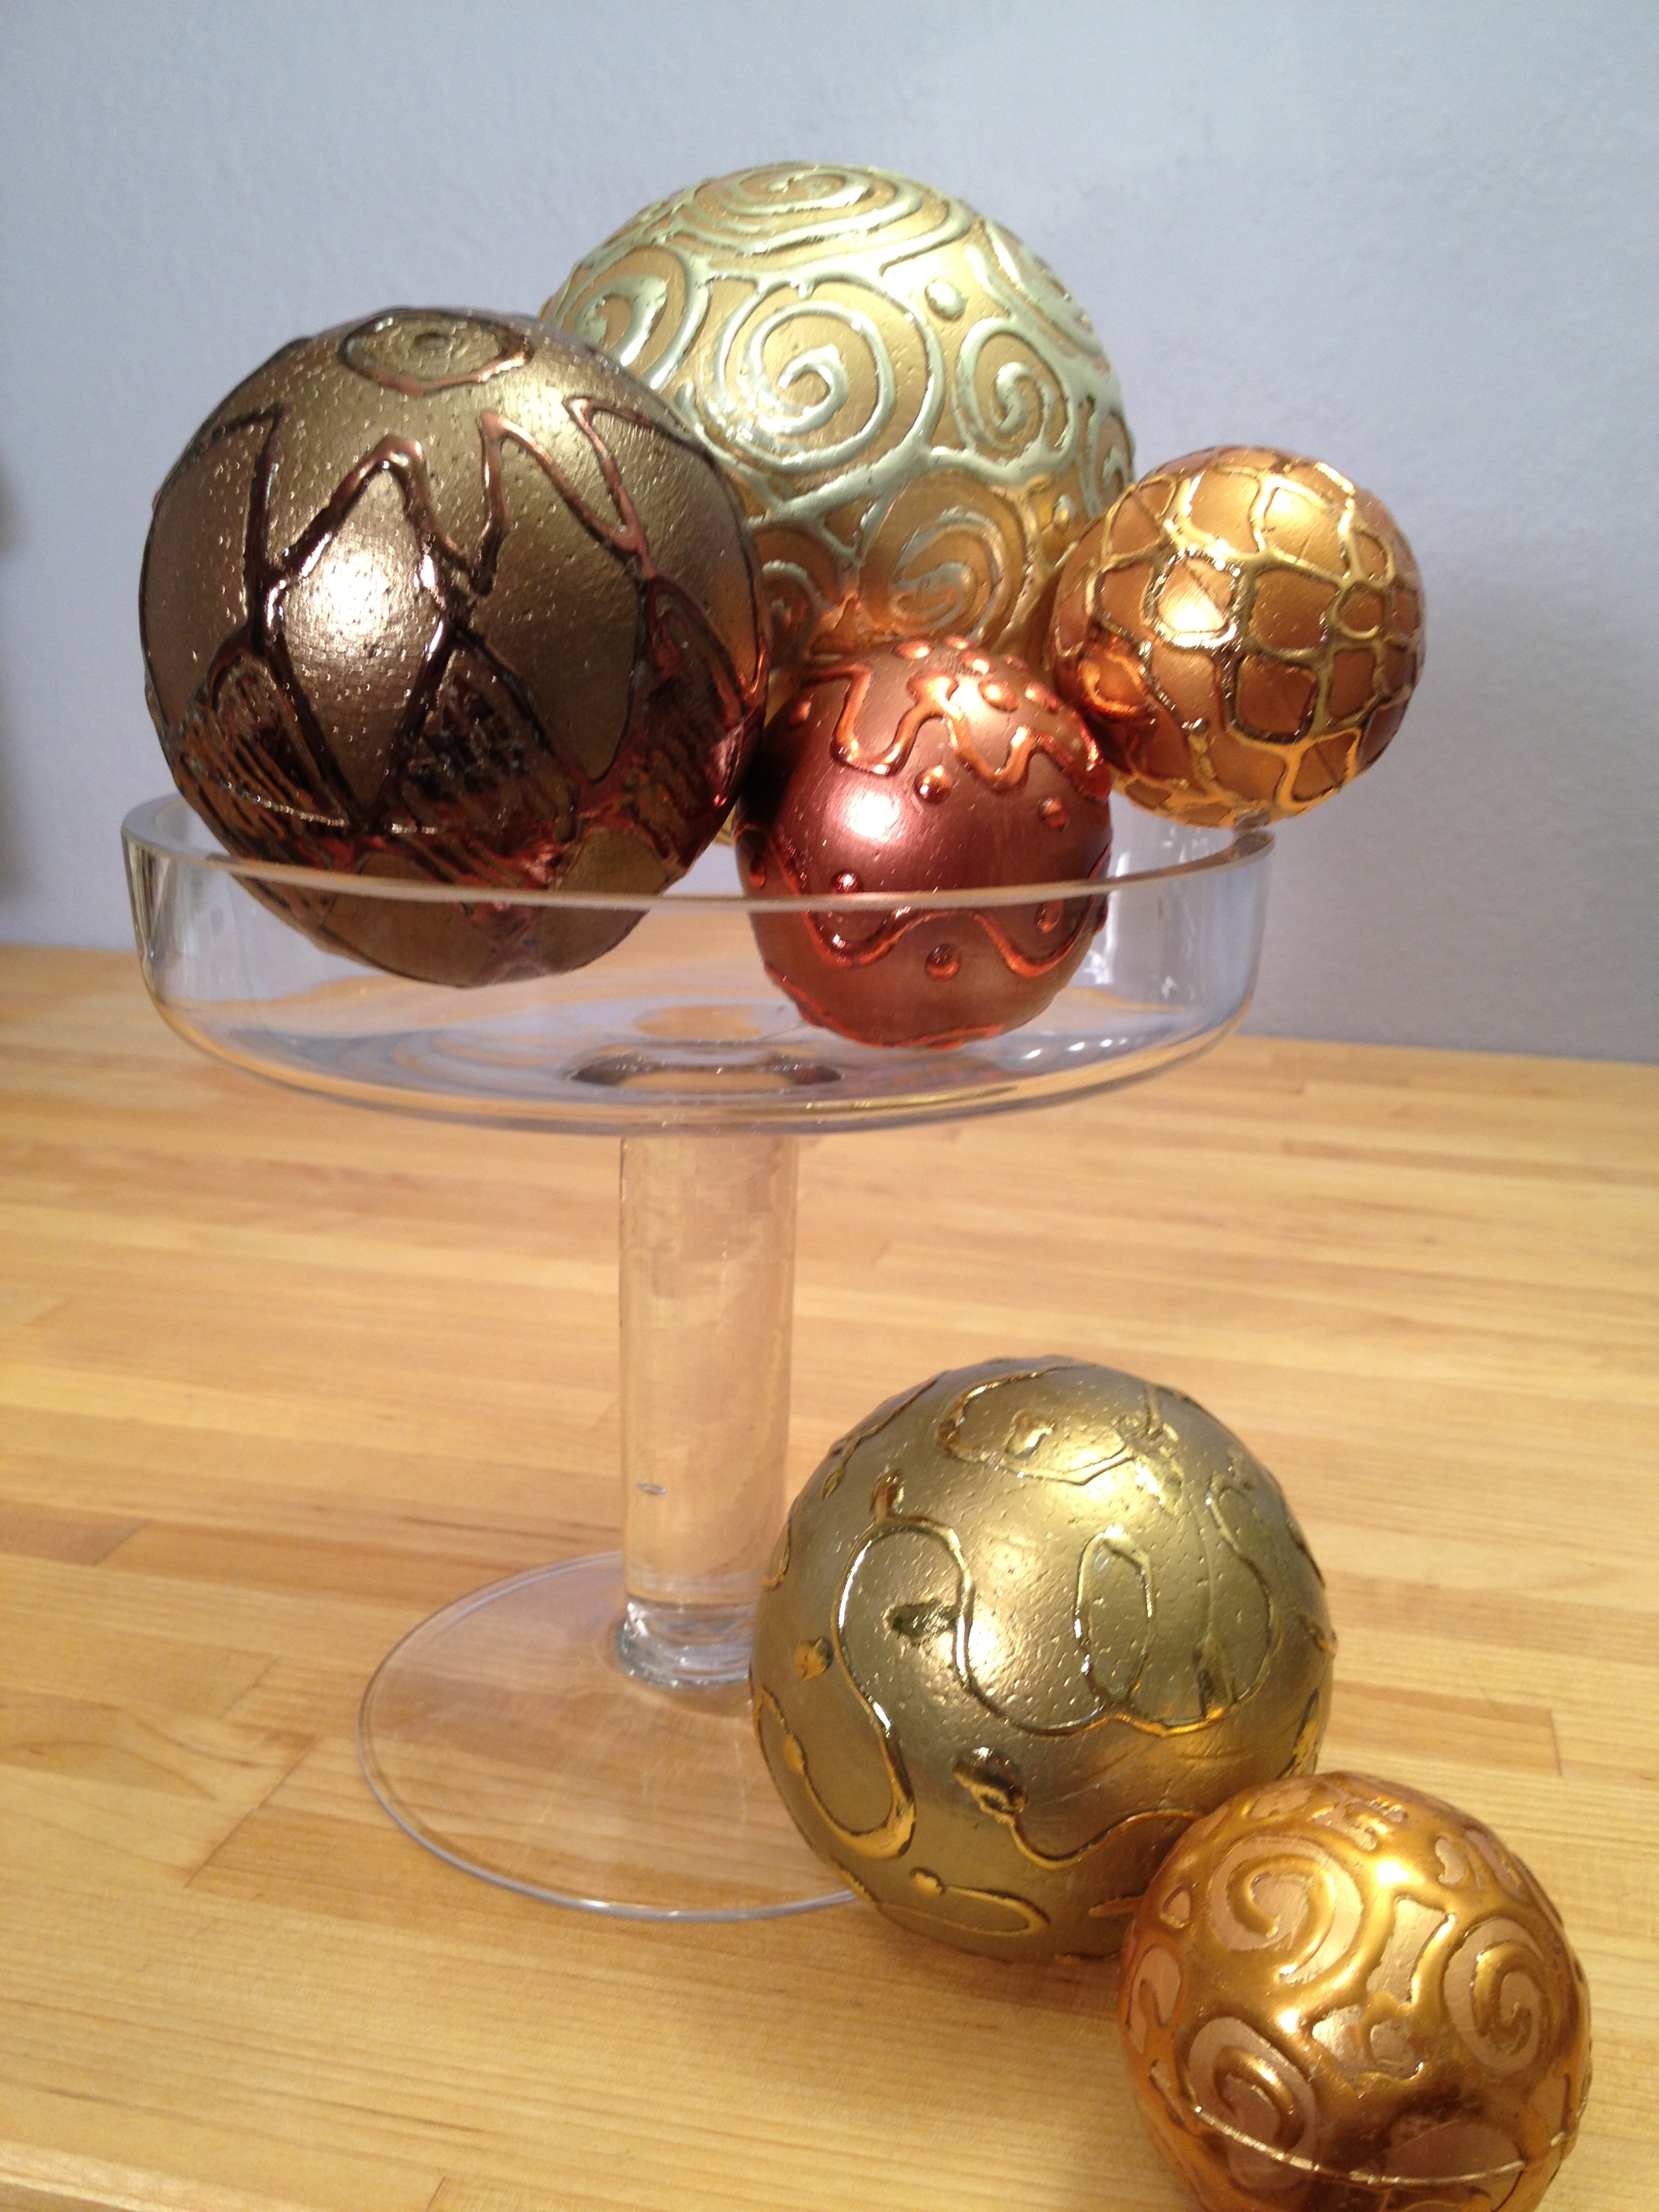 accent ebony news with ball bowl updates carved product decorative wood and set spotlight decor balls